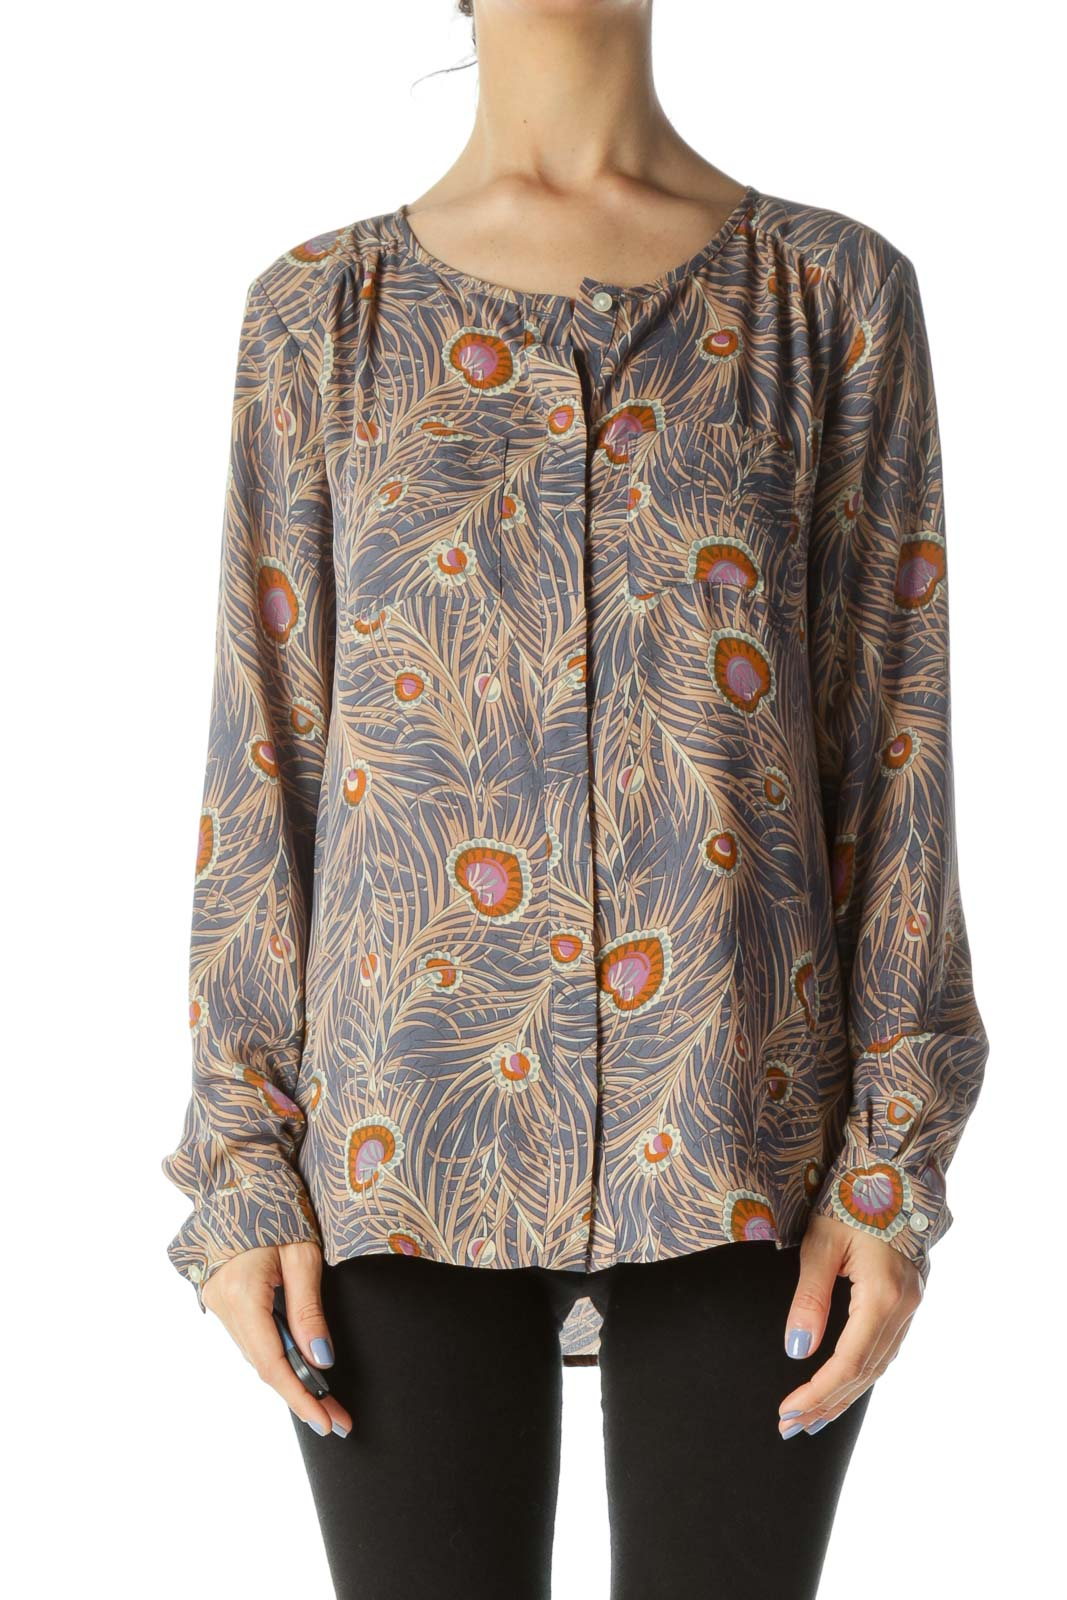 Gray/Beige/Orange Pocketed Round-Neck Long-Sleeve Blouse